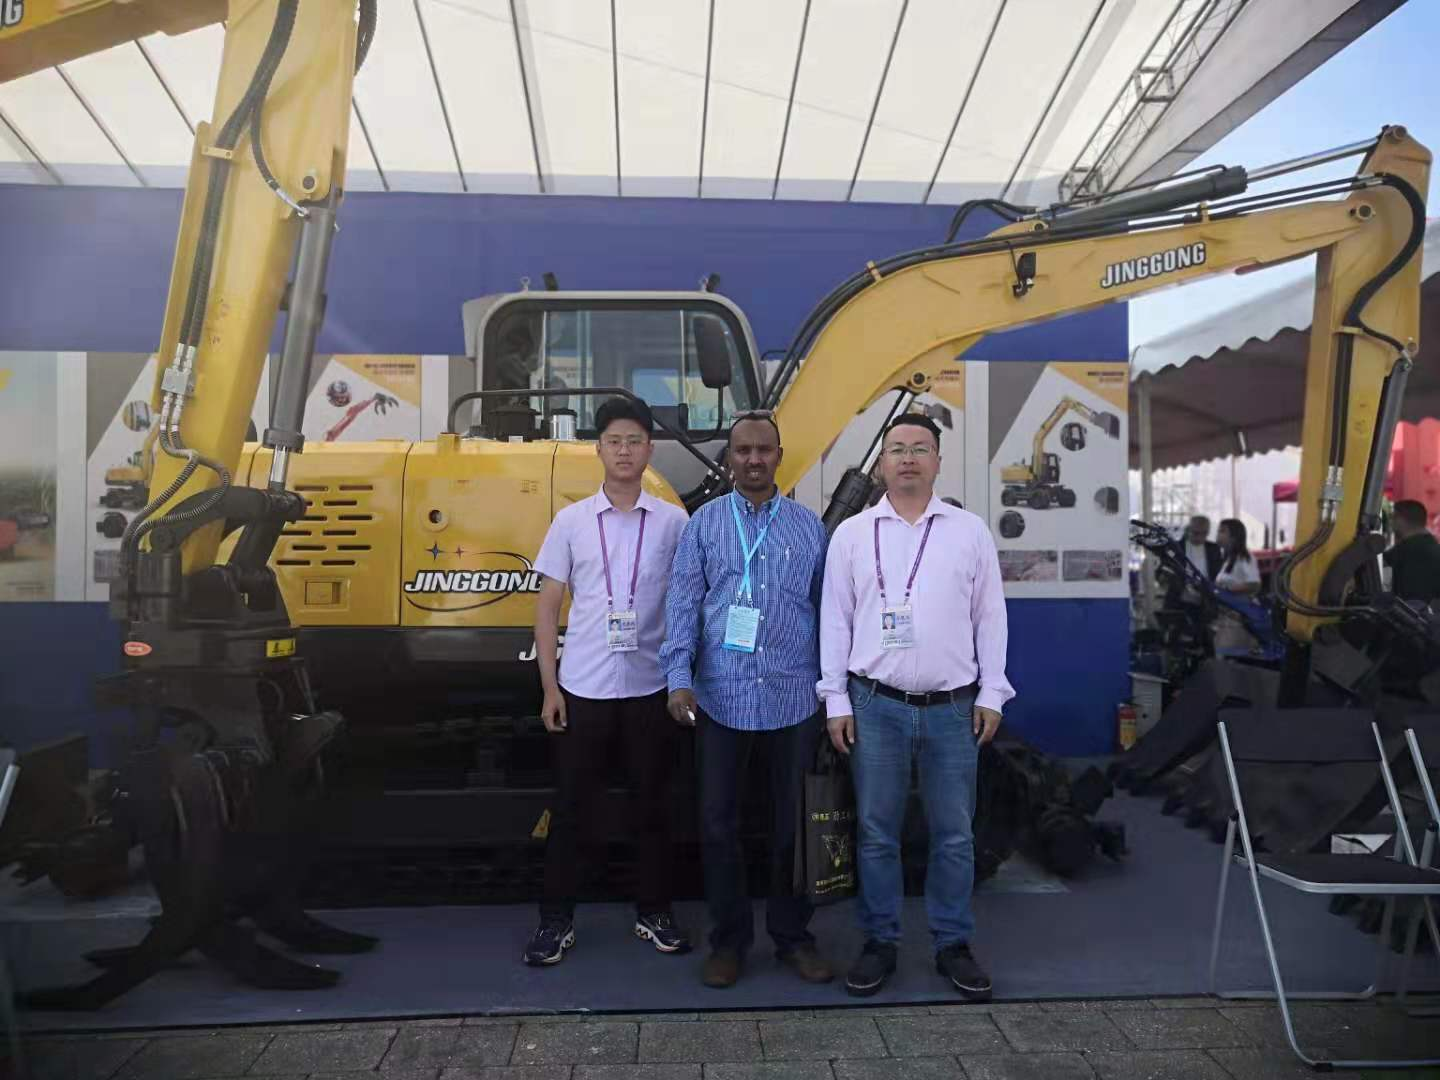 Jing Gong 80L crawler excavator with sleeper changer attends the126th Canton Fair